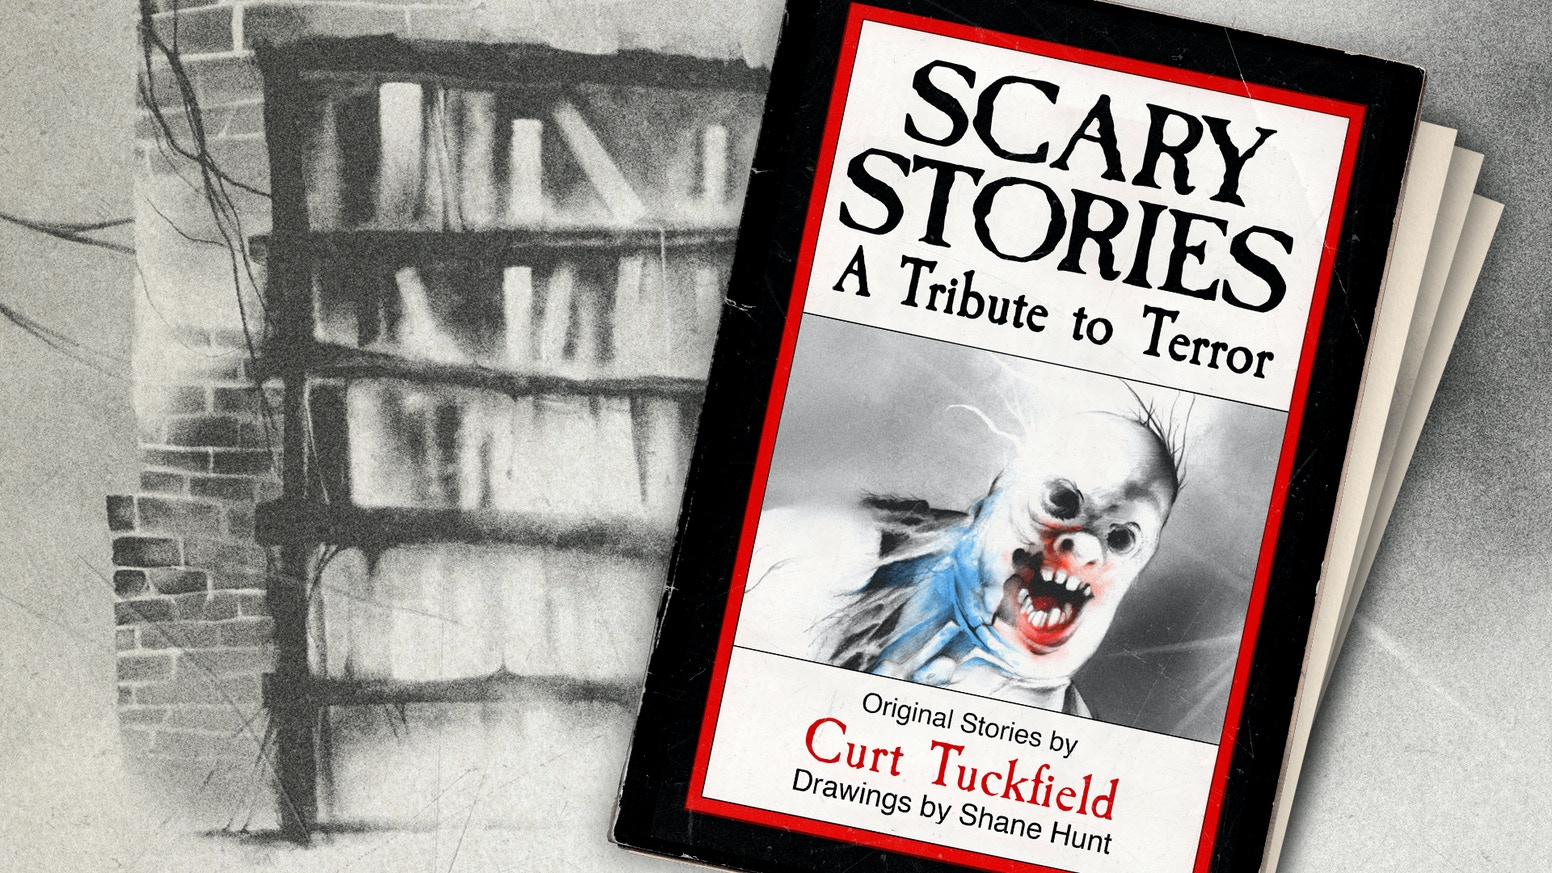 A new book of original stories and illustrations that pay tribute to the work of Alvin Schwartz and Stephen Gammell.